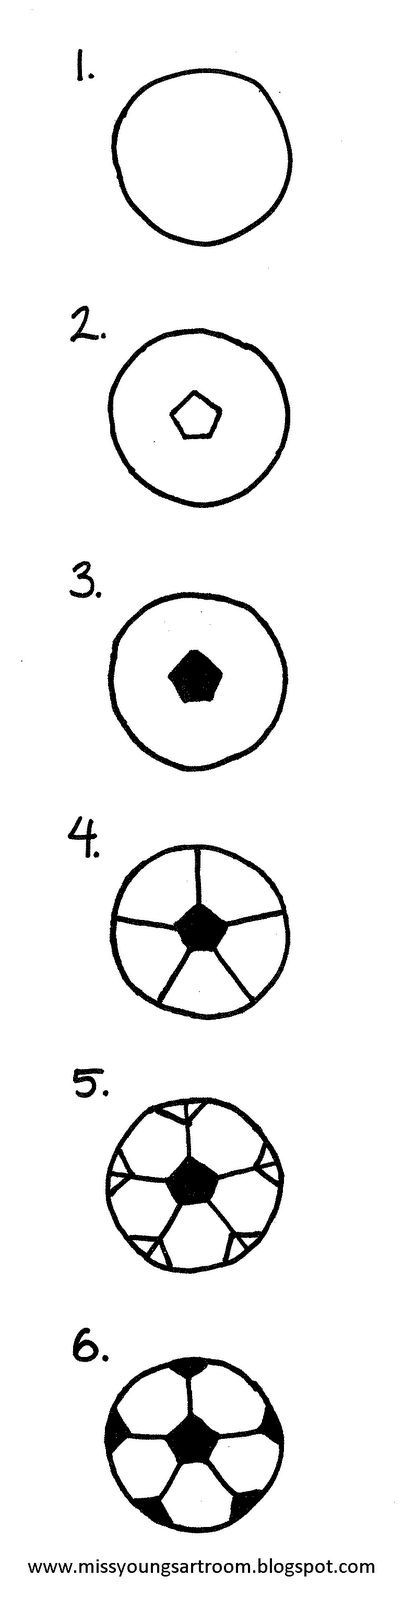 Cool Easy Soccer Ball Drawing